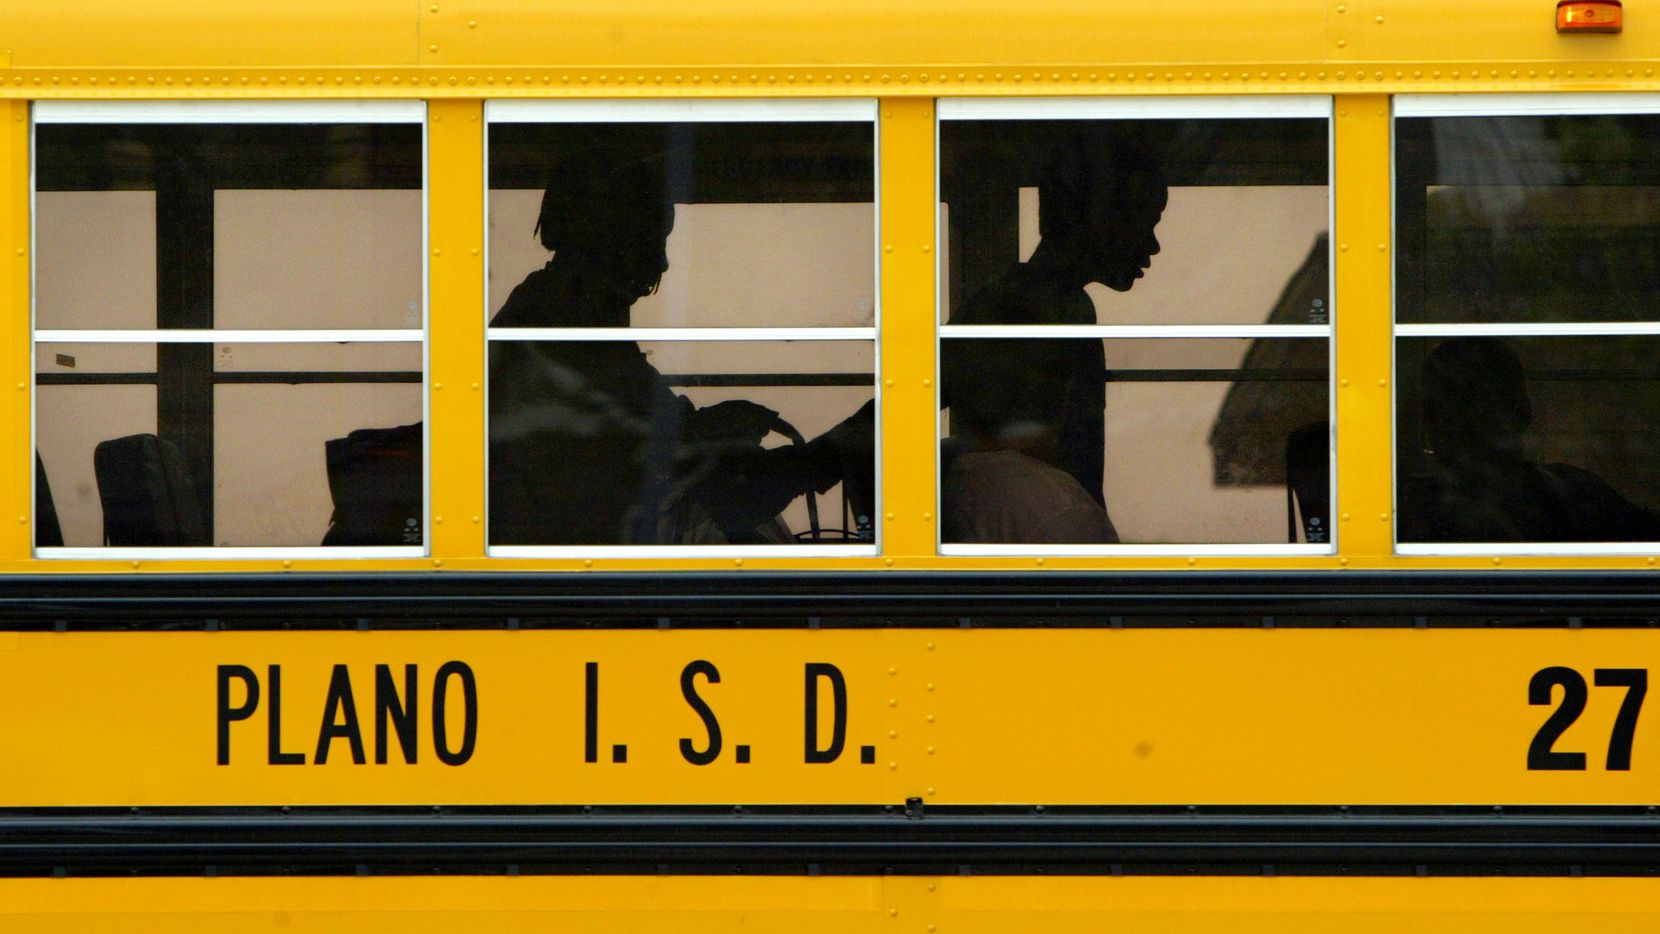 A Plano ISD school bus is pictured in this file photo. The school district has canceled classes Wednesday as North Texas braces for more snow.